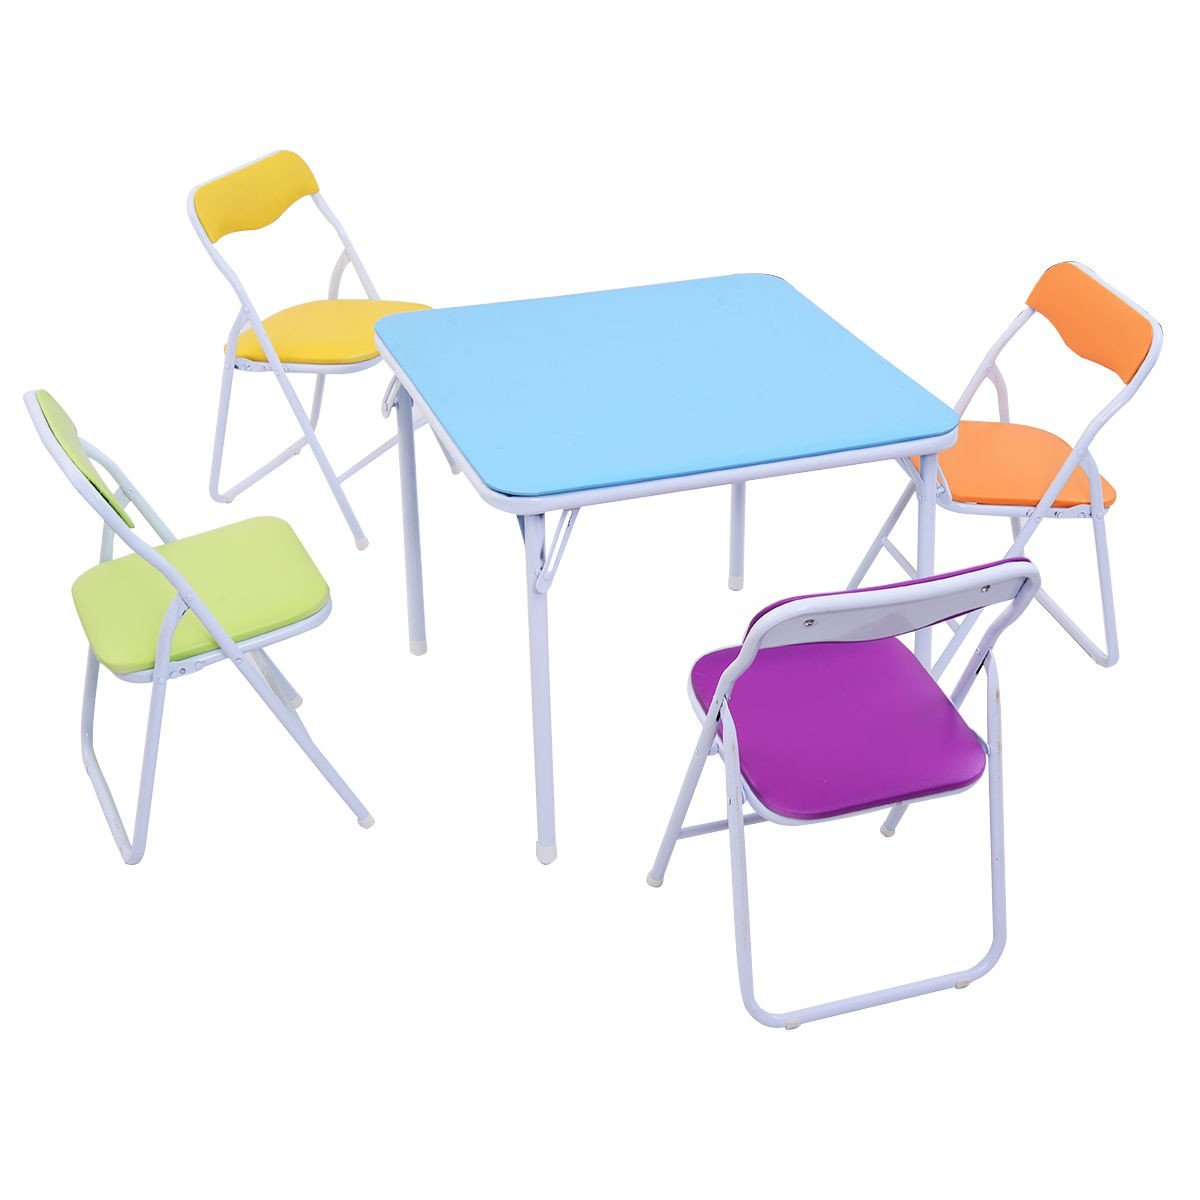 Multi-color Kids Table and Chairs, set of 5 pieces